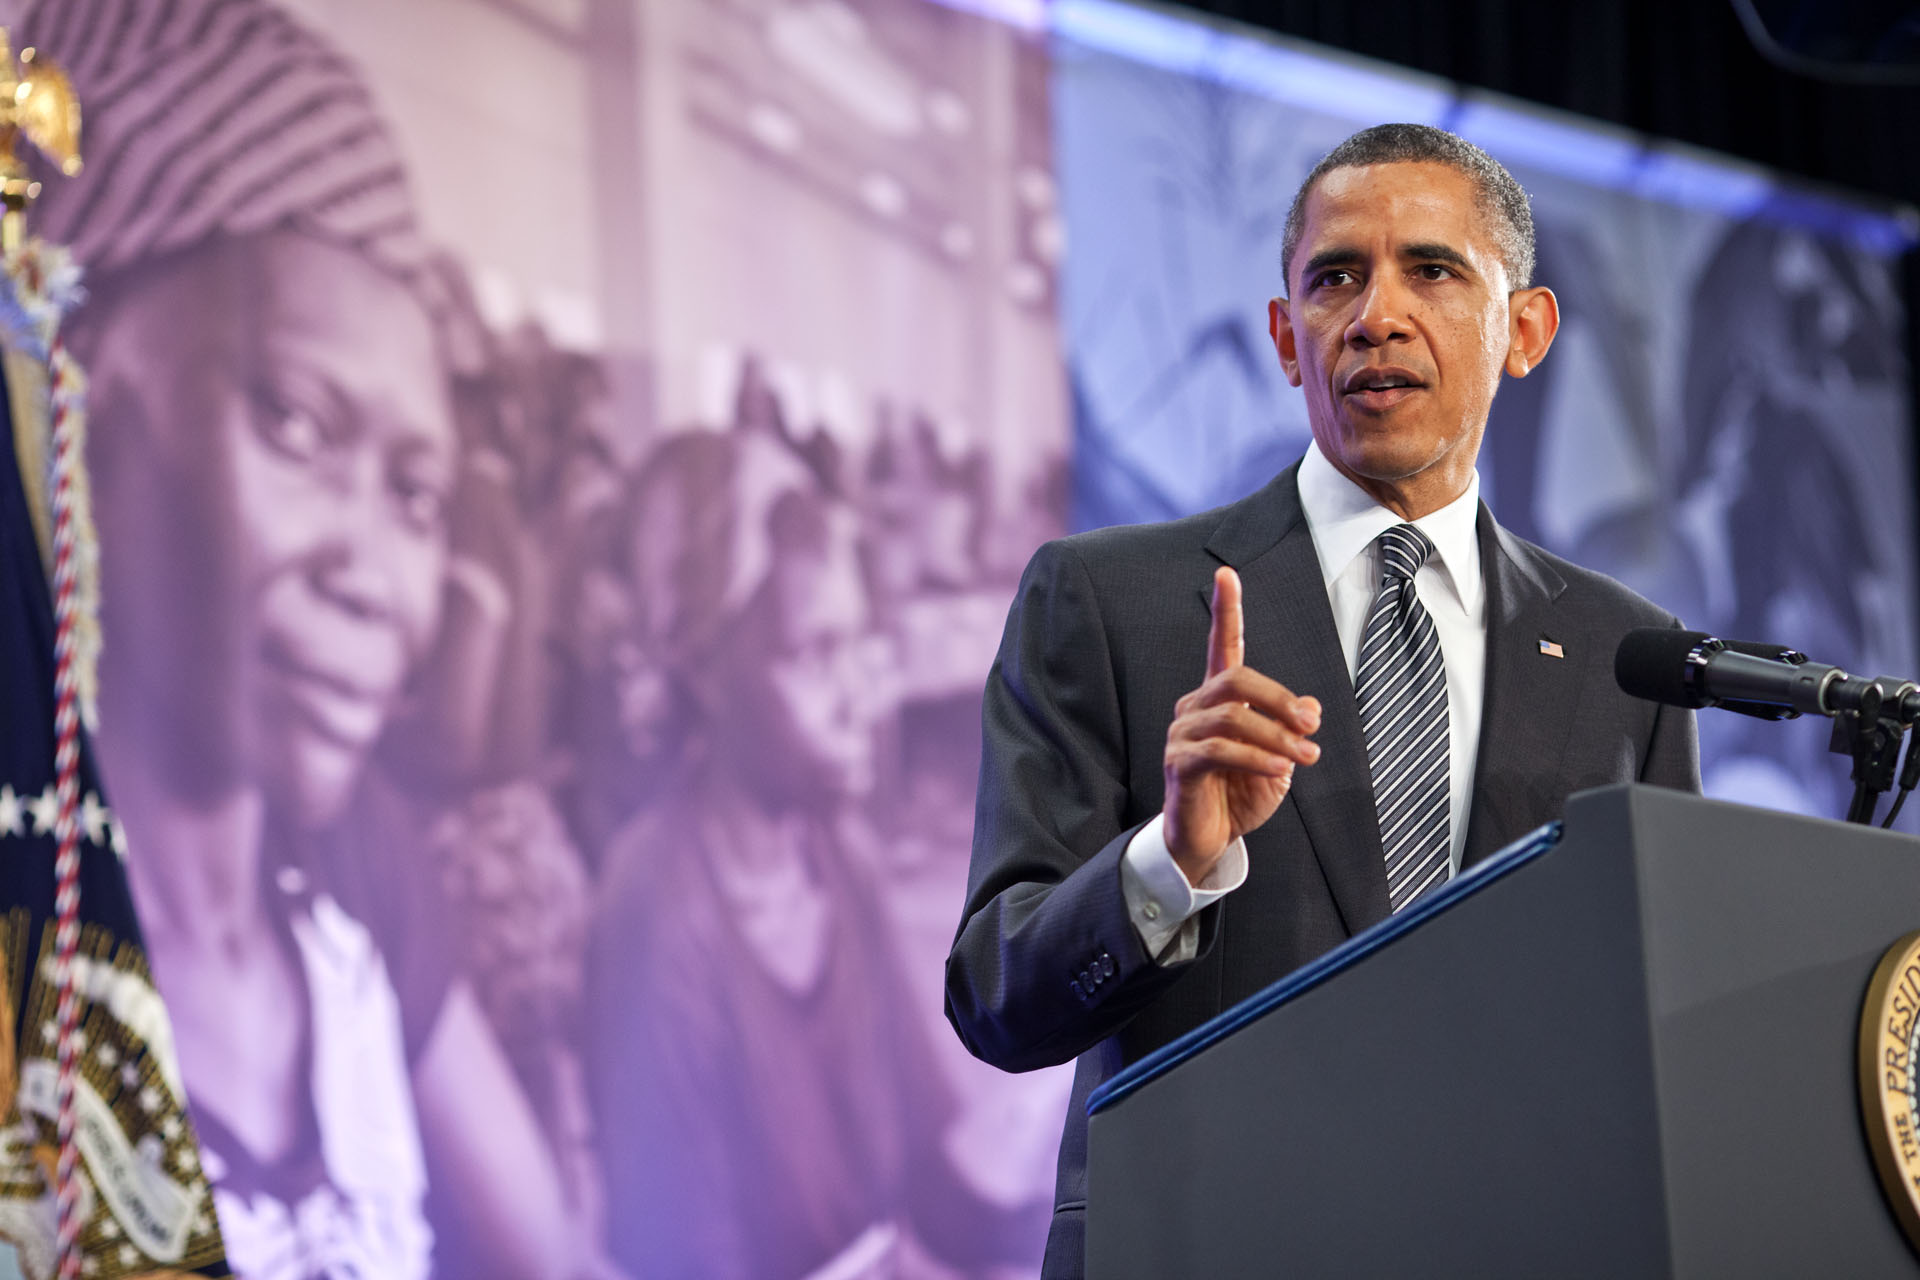 President Barack Obama delivers remarks at the Symposium on Global Agriculture and Food Security